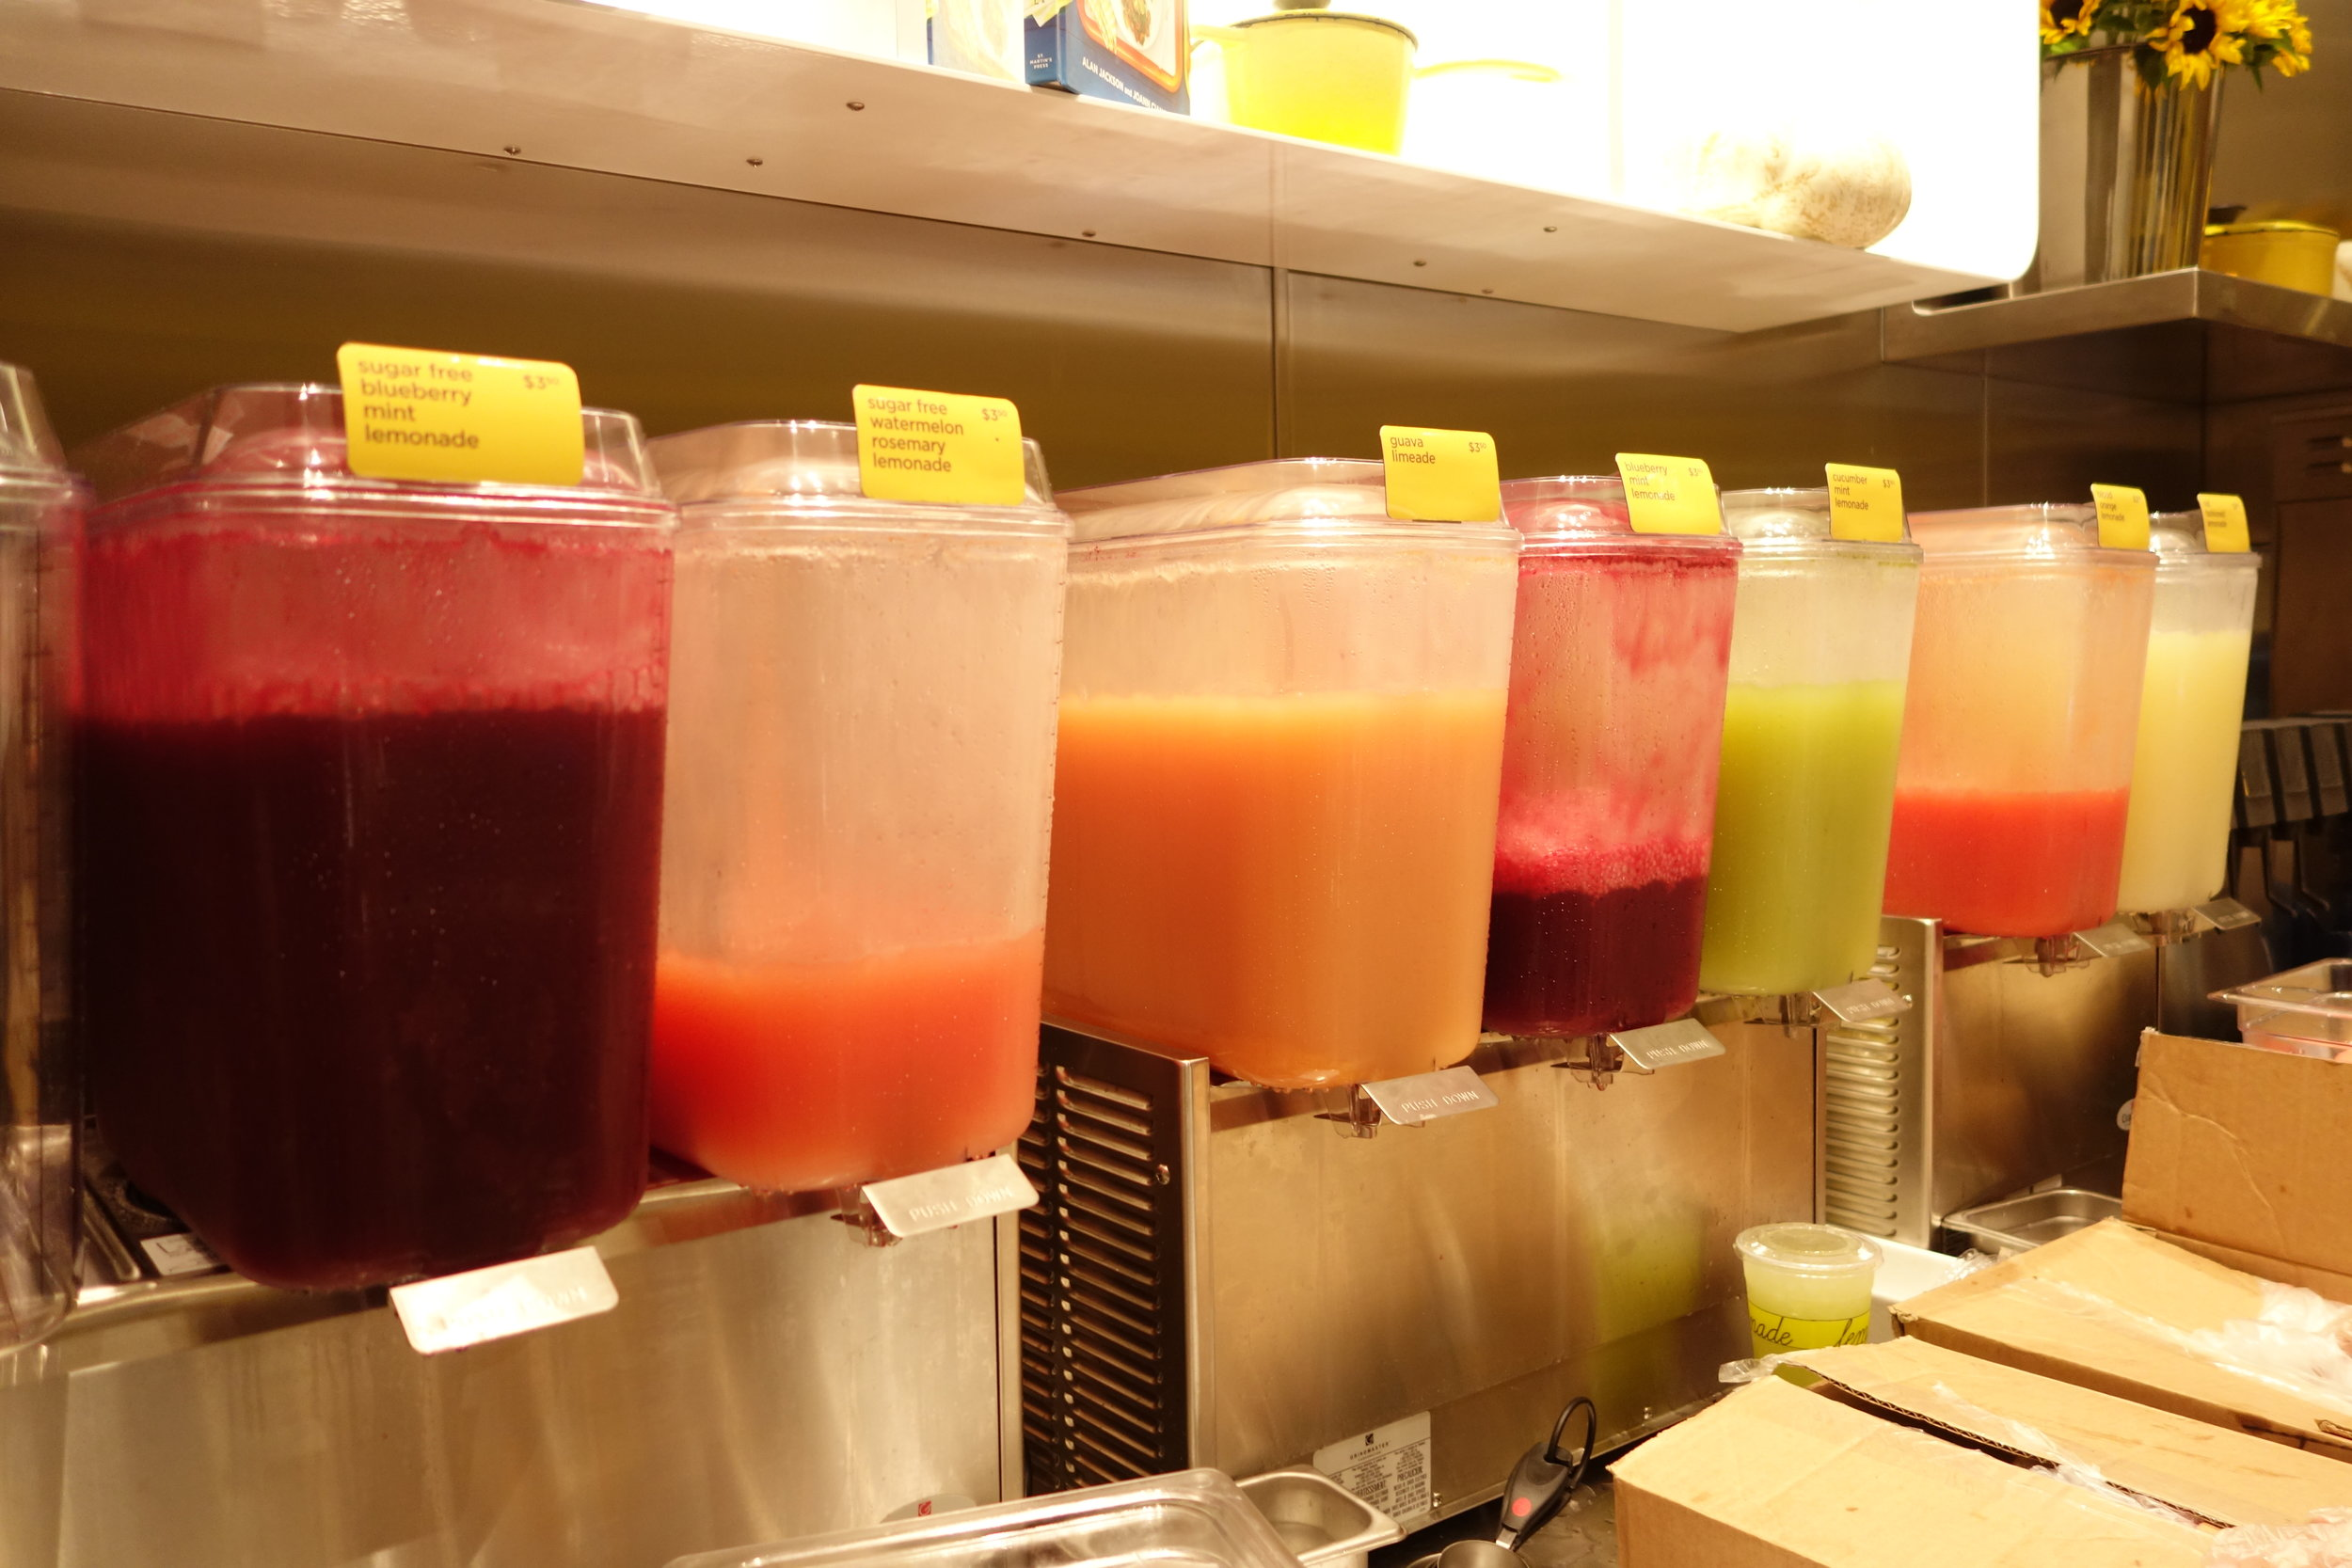 Variety of lemonades: Old Fashioned, Cucumber Mint, Blueberry Mint, Blood Orange, Watermelon Rosemary, Guava Limeade